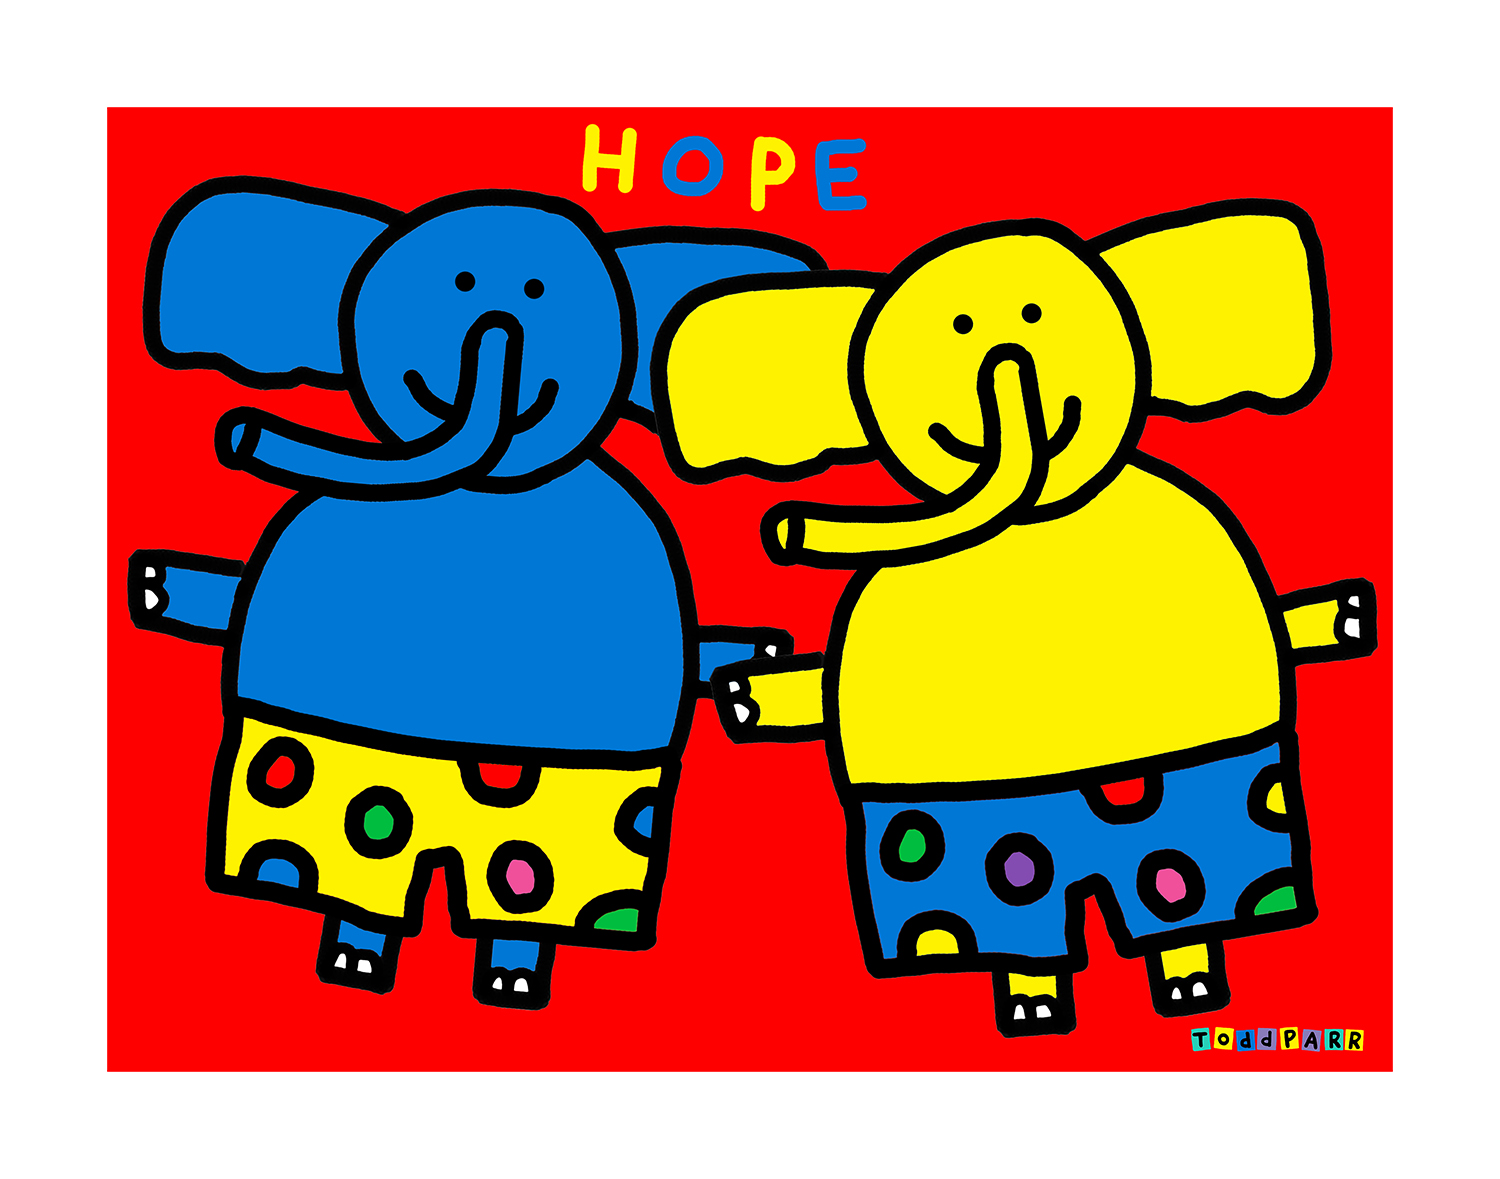 'Hope' by Todd Parr